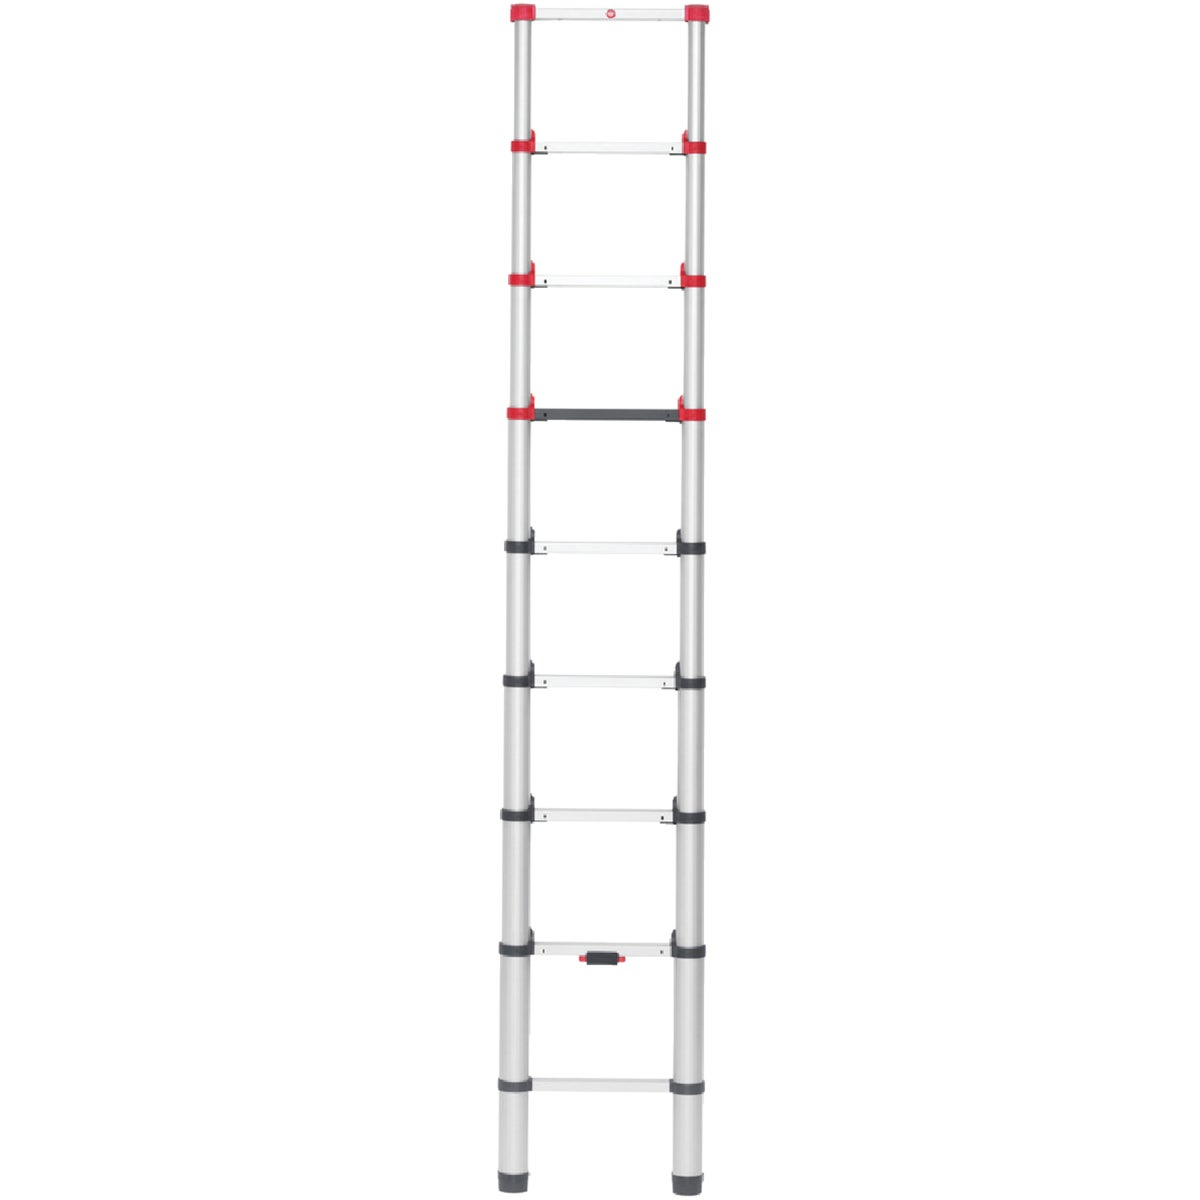 9 RUNG TELESCOPIC LADDER